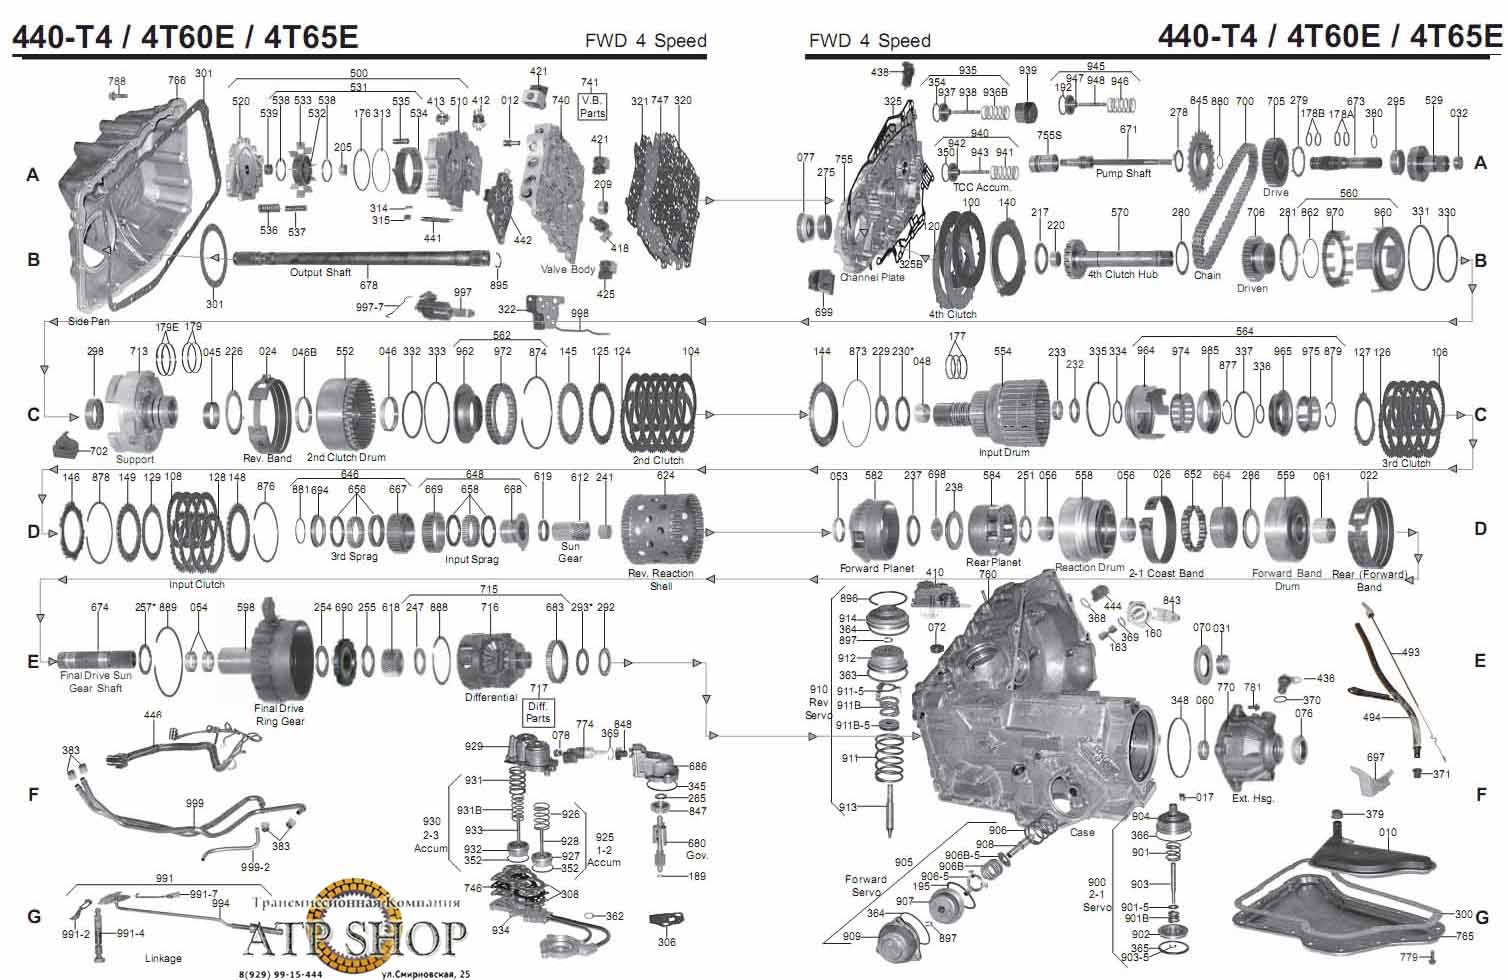 4t60e Schematic Everything About Wiring Diagram 4l60e Why Transmission Repairs For A Gm Are Major Headache Rh Etereman Com Parts 4t65e